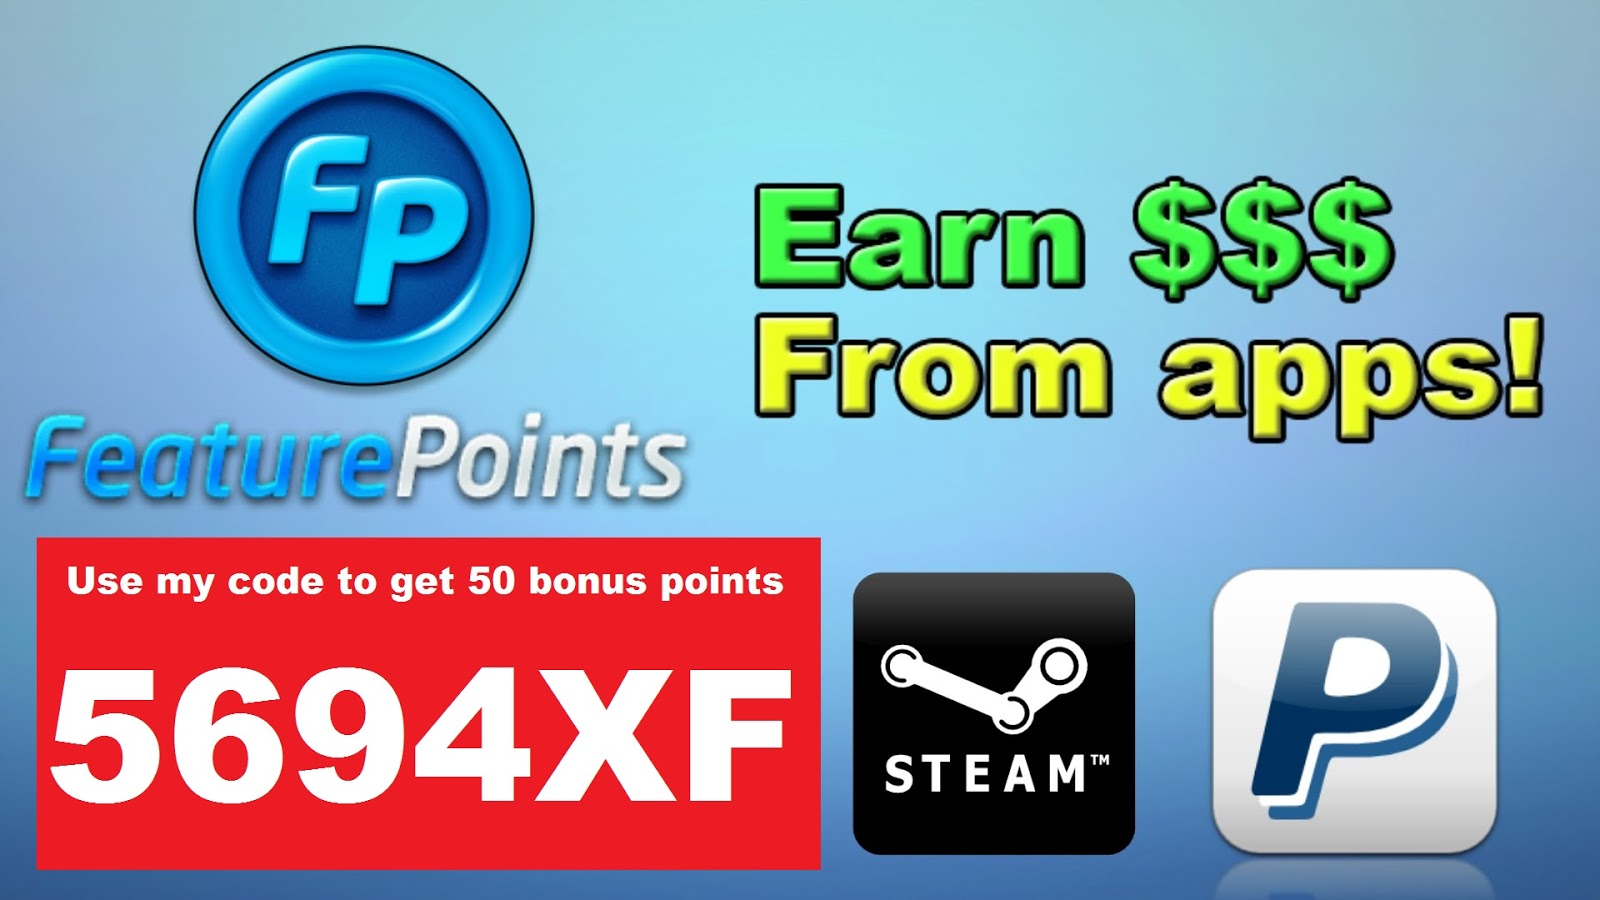 Earn steam gift cards with FeaturePoints | code4you.tk